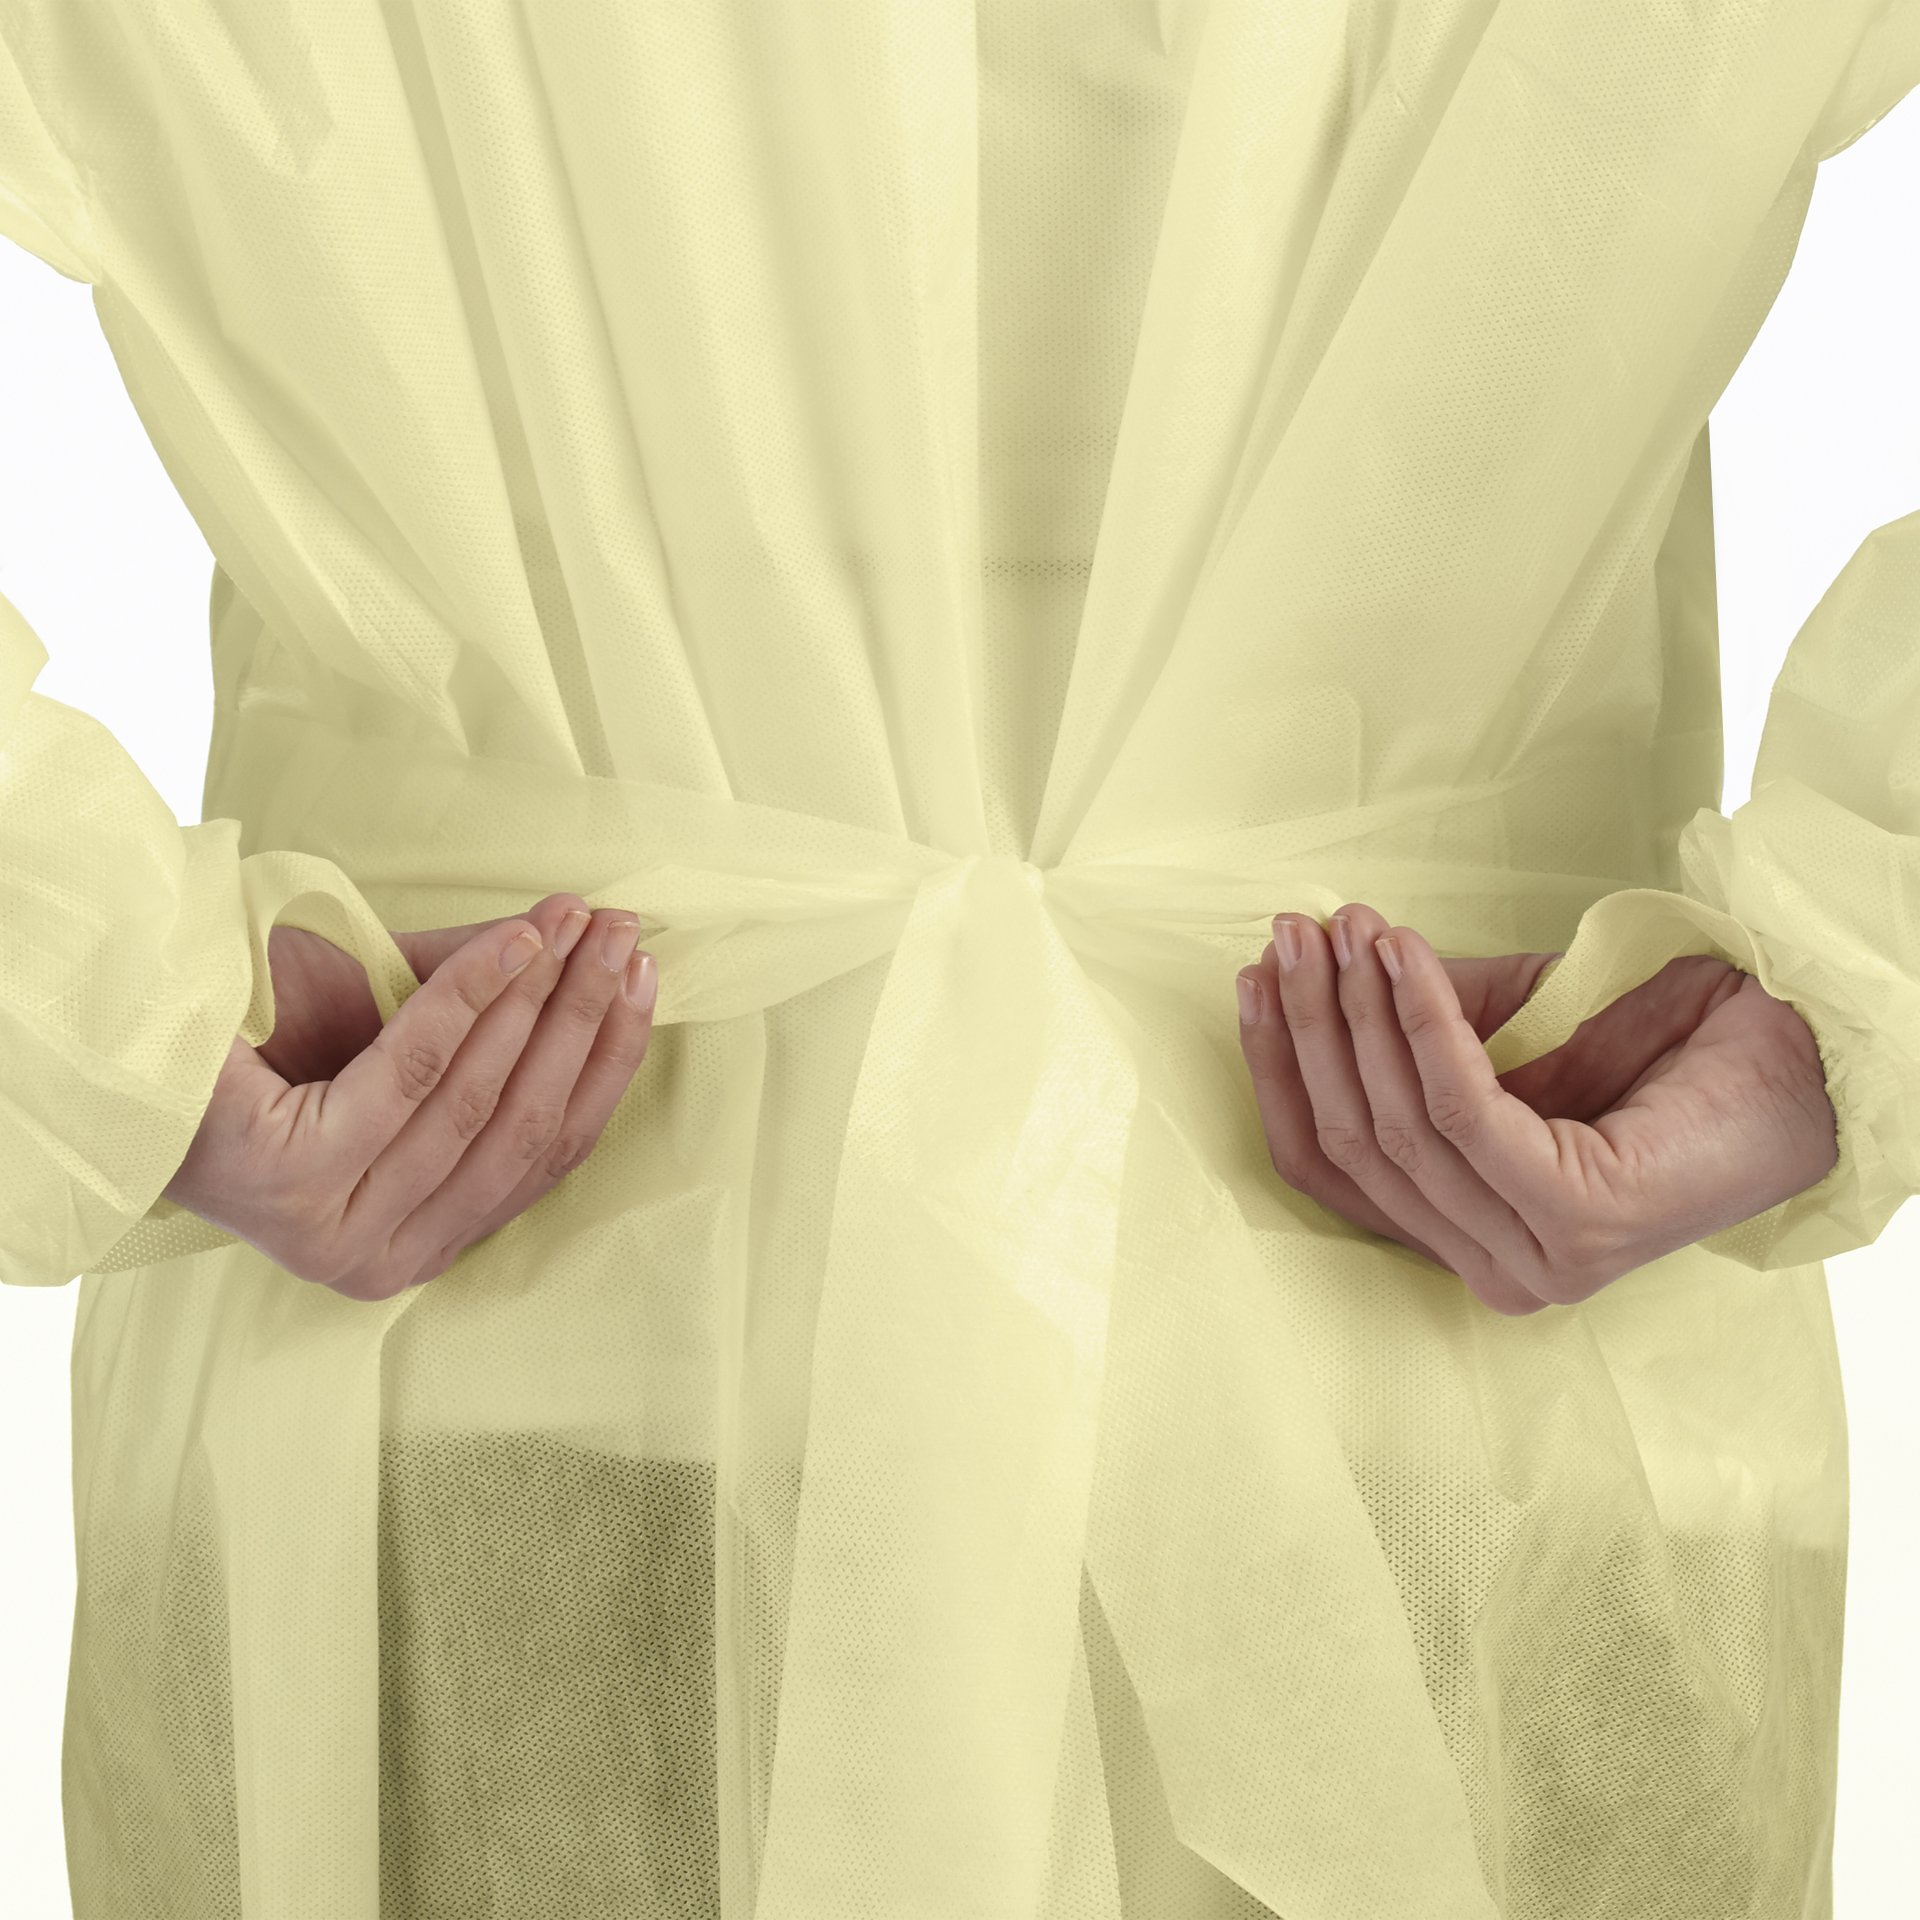 Disposable SMS Polypropylene Isolation Gown, with Elastic cuffs, Breathable, flexible, and fluid resistant. Professional Surgical gowns & Lab Coats. (10 Units, Regular) by AMD Ritmed® (Image #5)